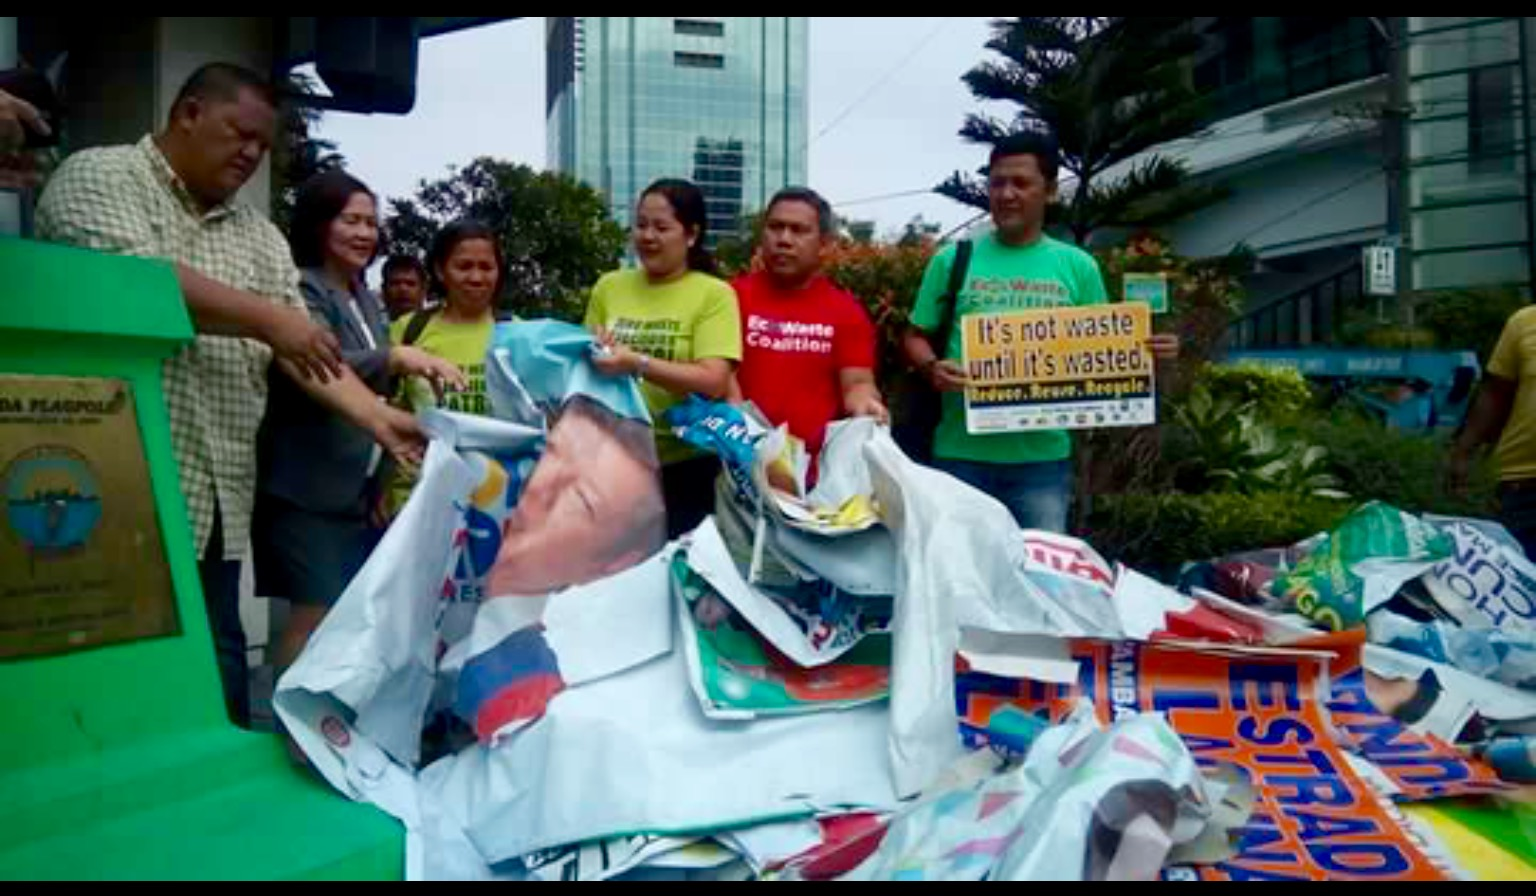 MMDA turns over illegally posted campaign materials to Ecowaste Coalition for recycling (PNA photo).